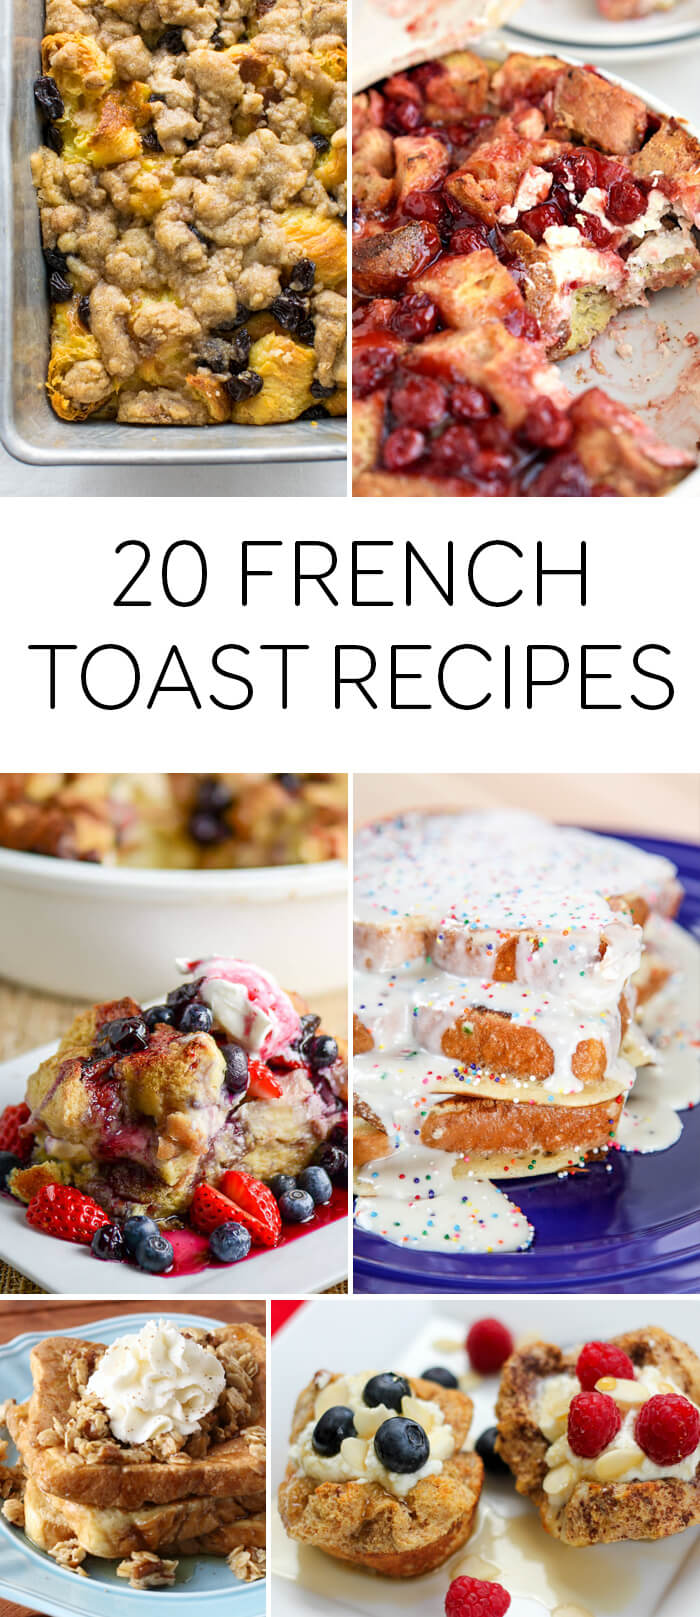 Not your average french toast - 20 fun french toast recipe ideas! Creme Brulée, Cheesecake and Cake Batter French Toast, anyone?